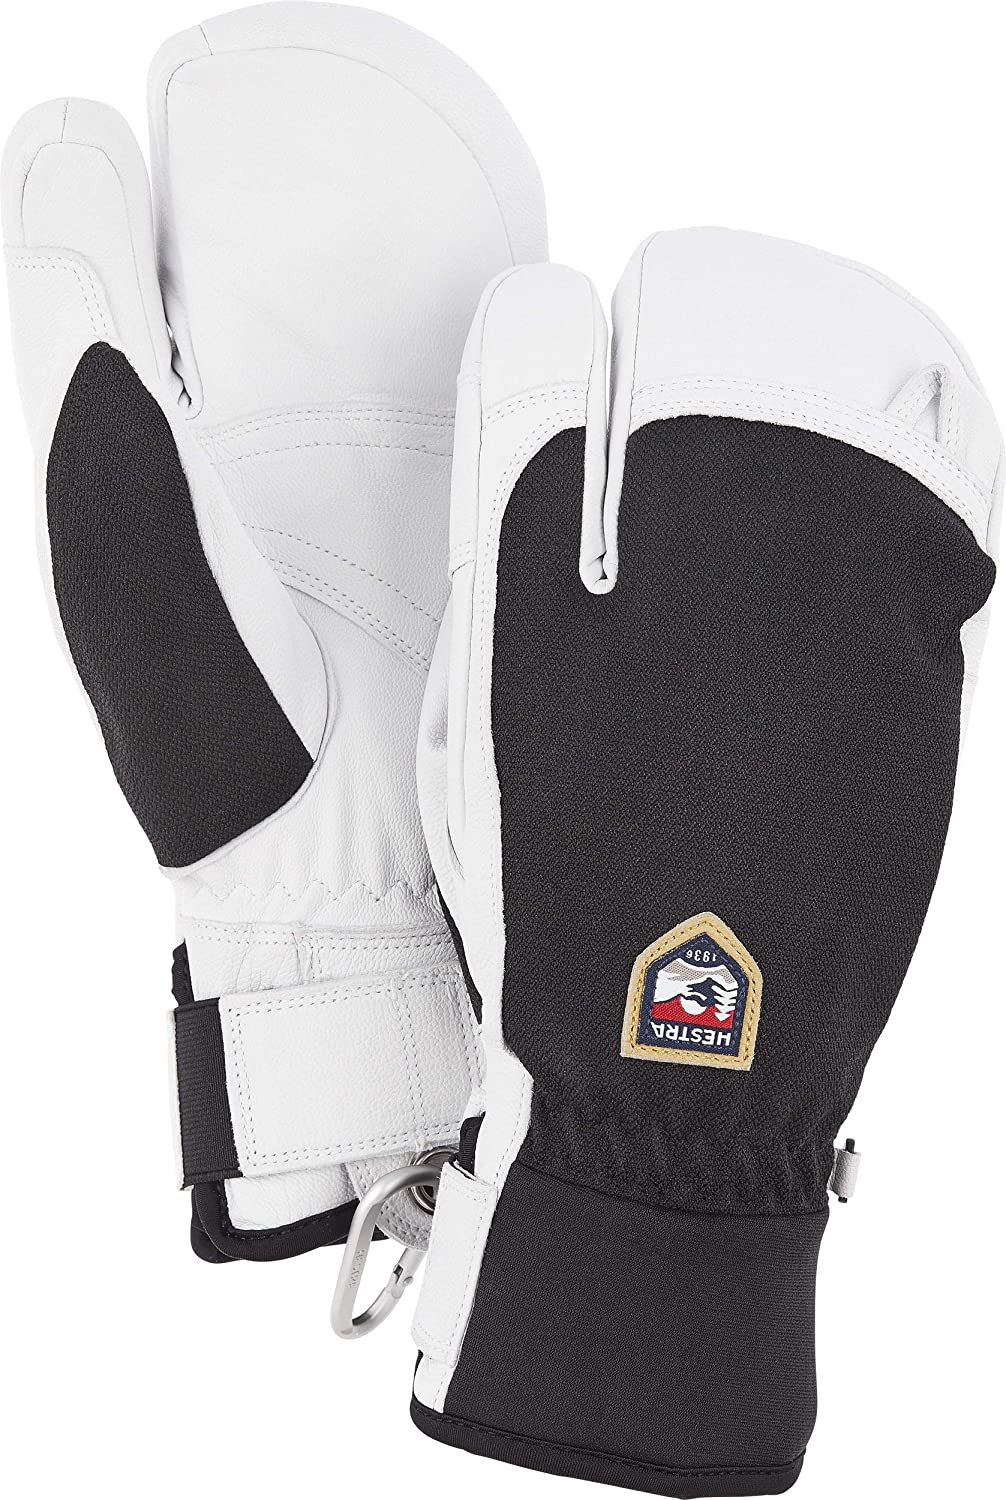 Hestra Army Leather Patrol 3-Finger Glove - Warm, Versatile 3-Finger Glove for Winter, Skiing, and Snowboarding